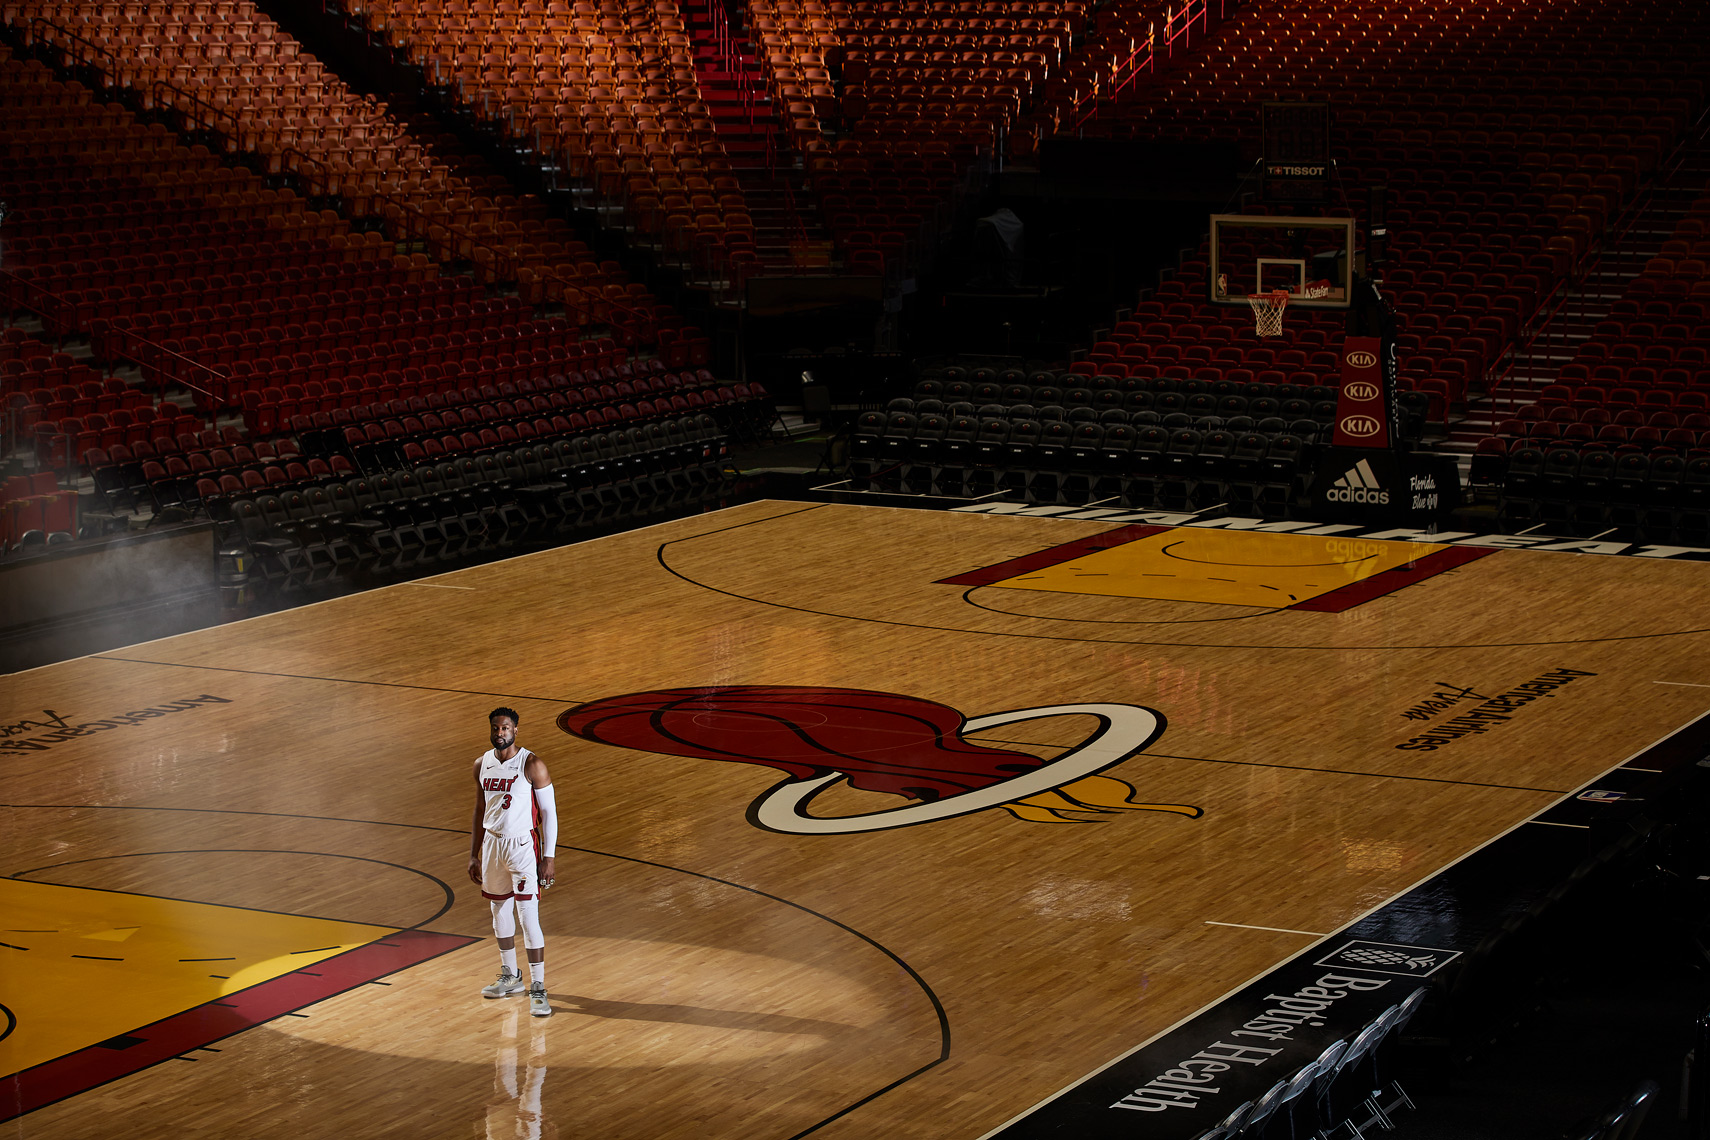 Dwayne_Wade_Miami_Heat_Player_Arena